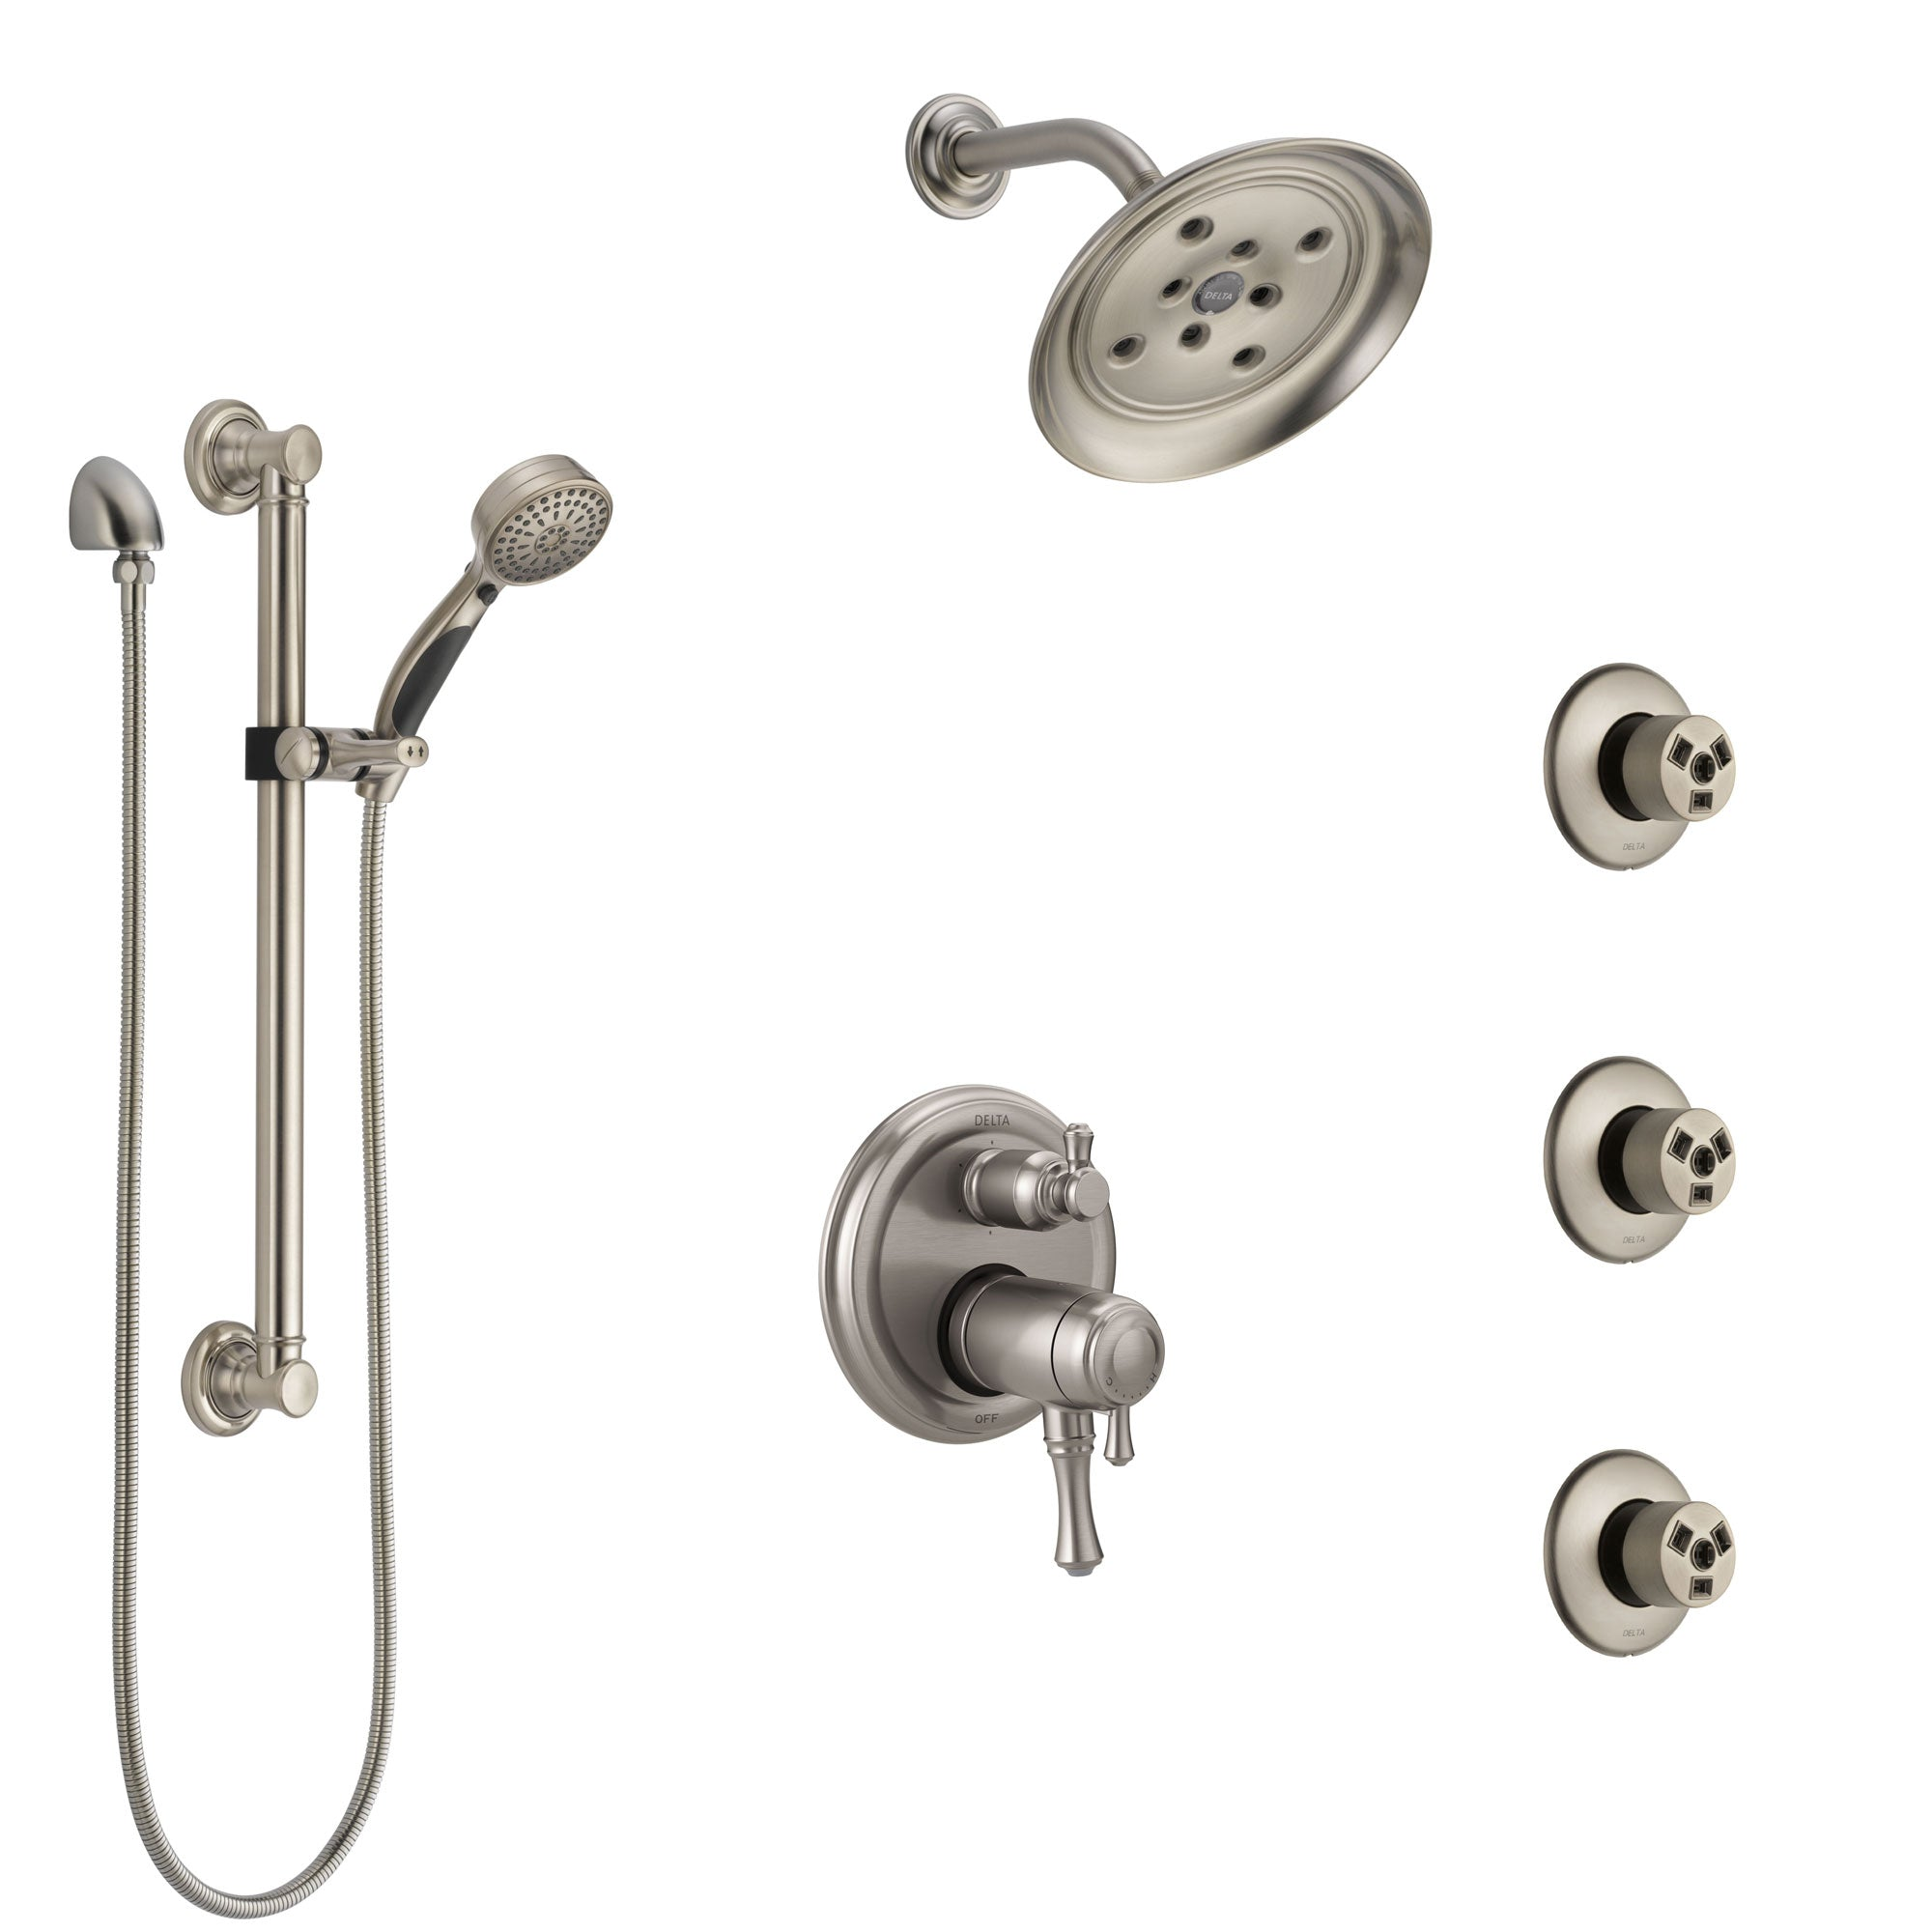 Delta Cassidy Dual Thermostatic Control Stainless Steel Finish Shower System, Showerhead, 3 Body Jets, Grab Bar Hand Spray SS27T997SS11